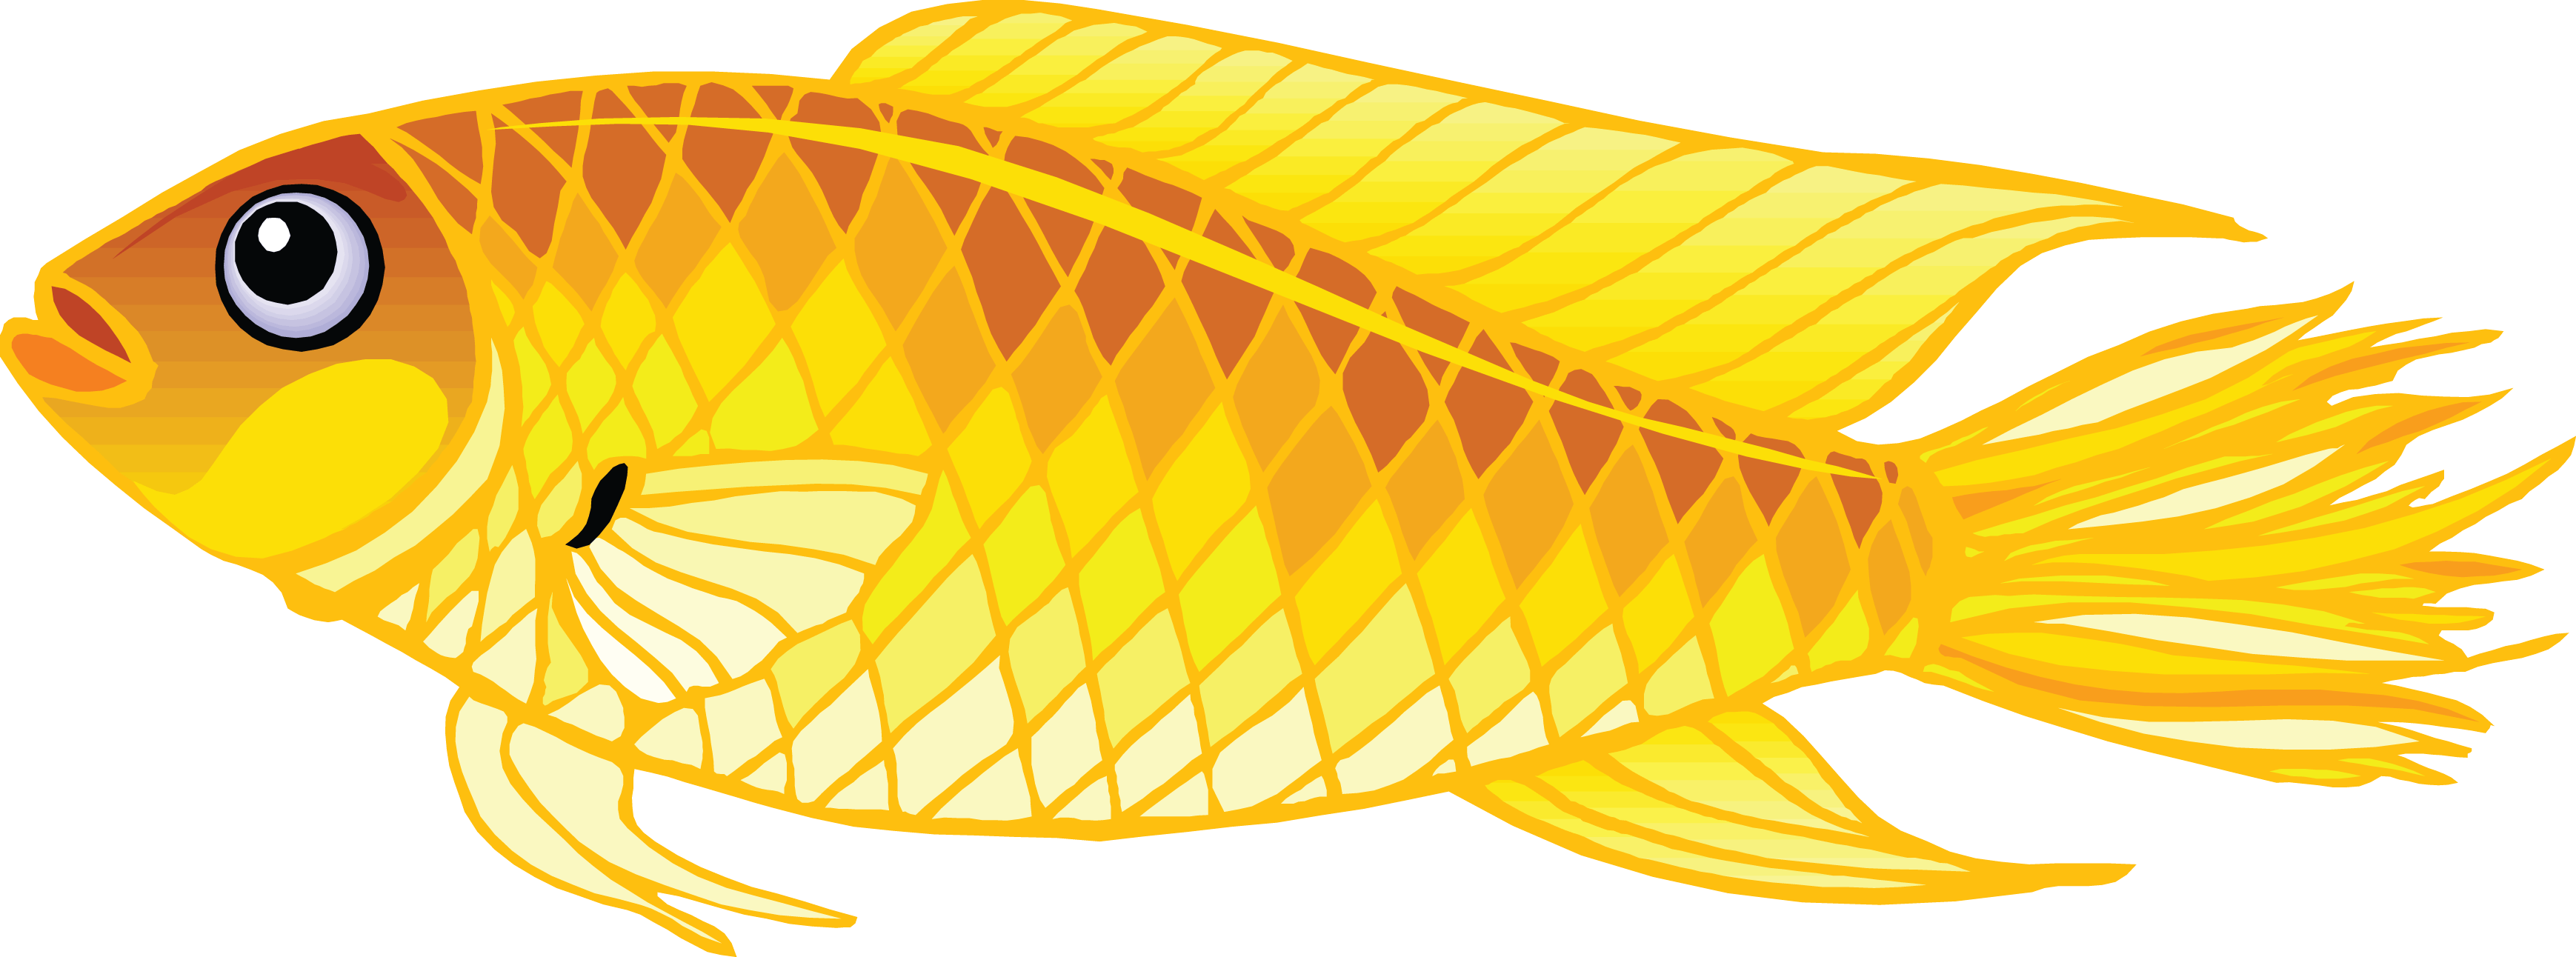 Golden fish clipart picture library download Golden Fish PNG Transparent Clipart Image #2 - Free Transparent PNG ... picture library download